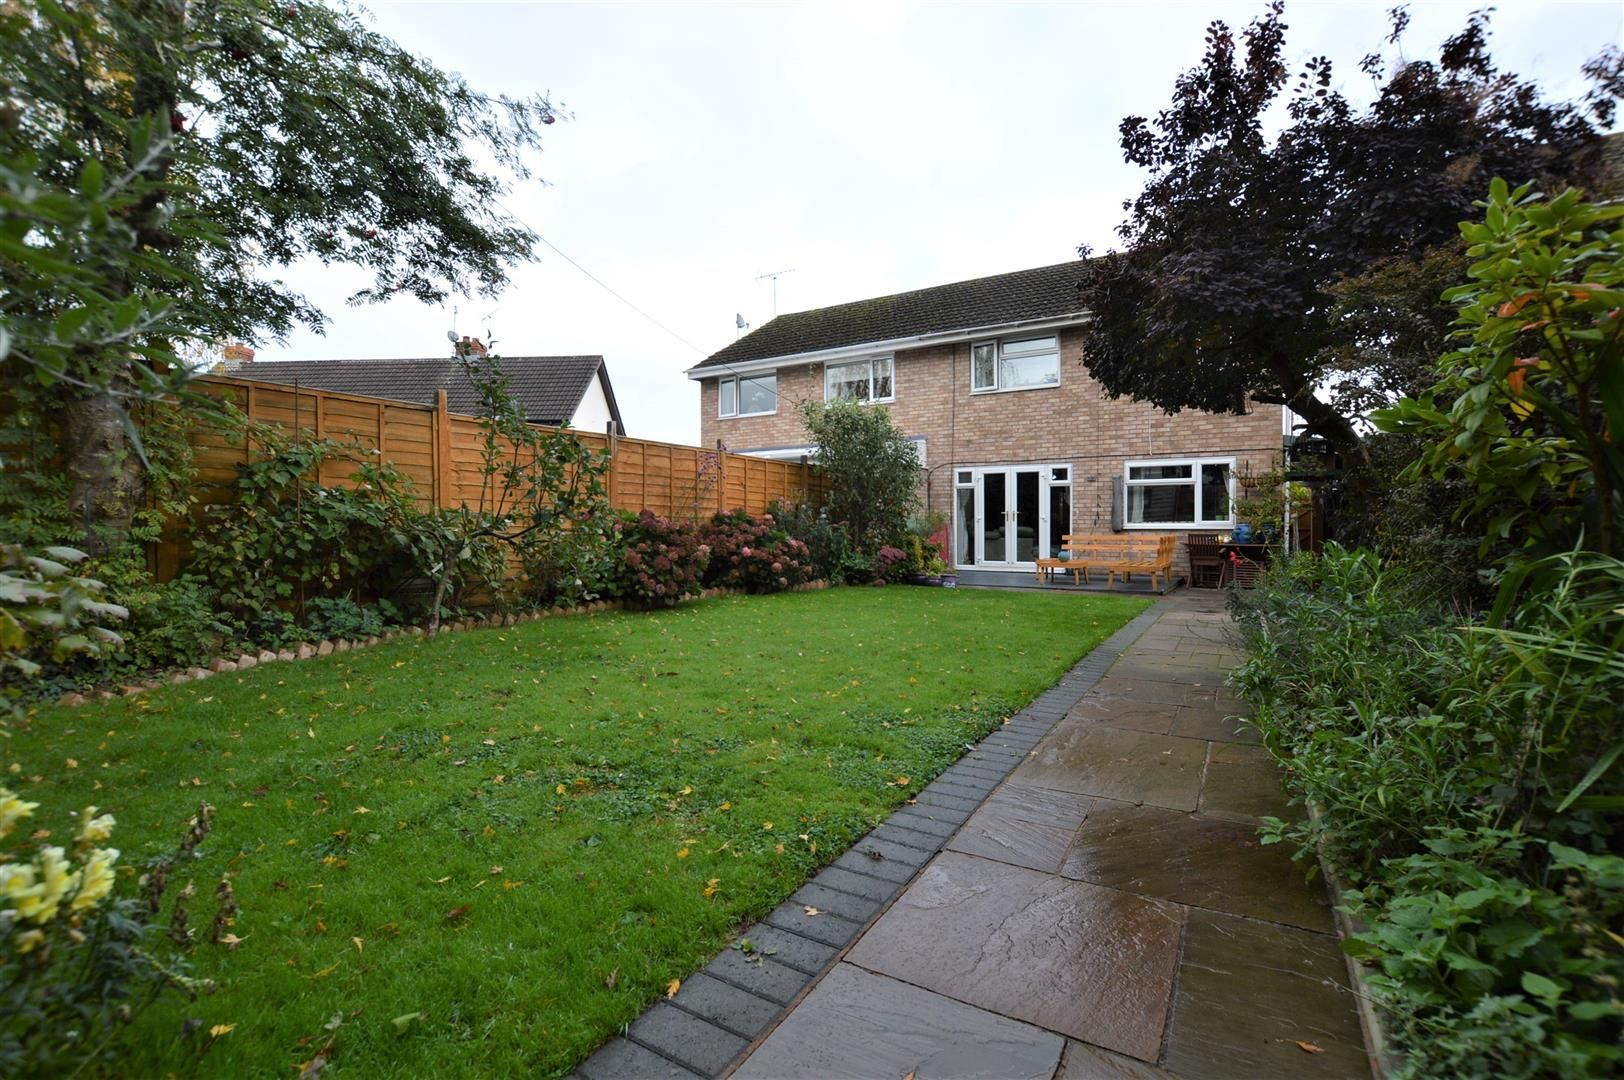 3 bed semi-detached for sale in Leominster  - Property Image 8